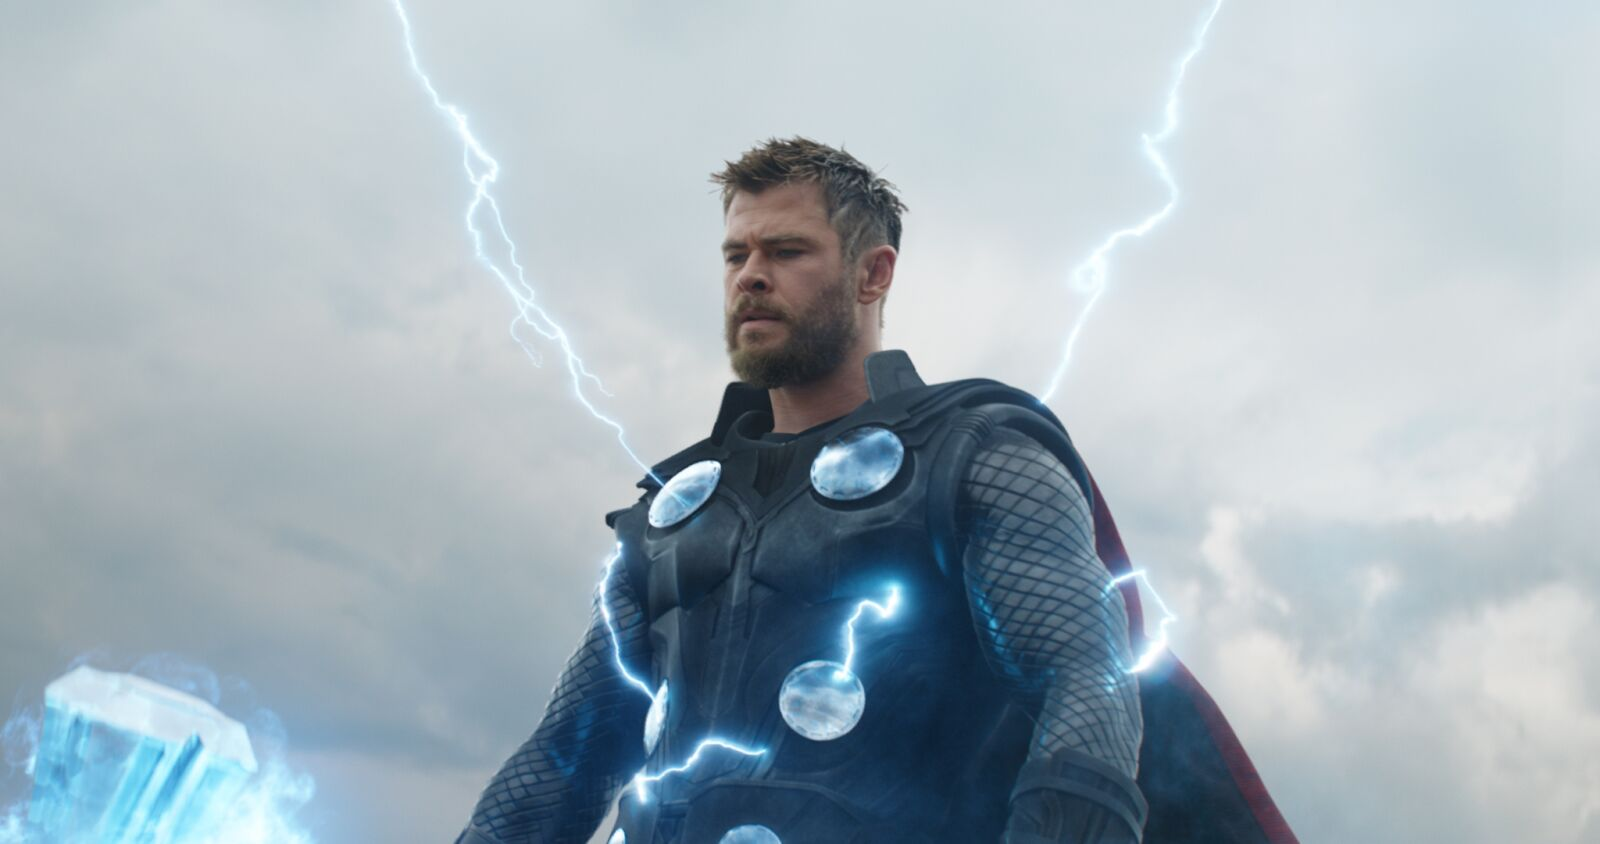 Avengers: Endgame: Is it really as good as Black Panther?